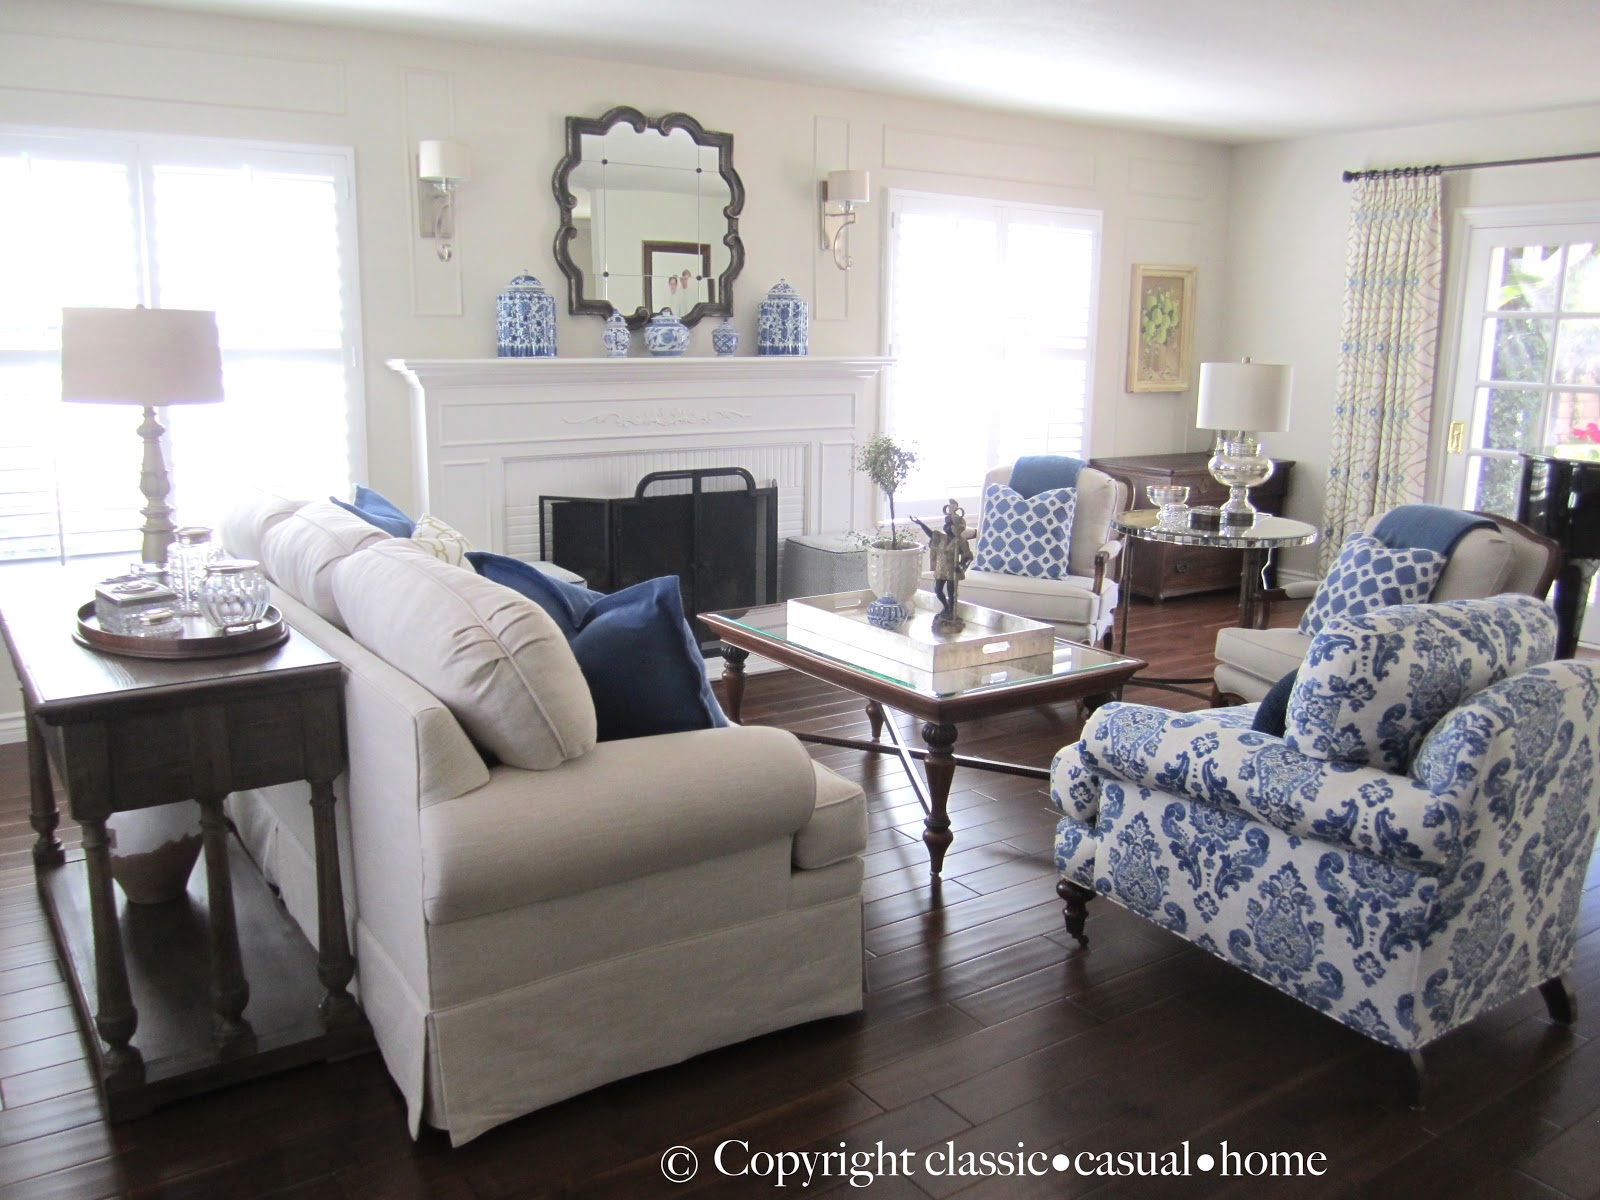 Classic casual home blue white and silver timeless for Classic family home